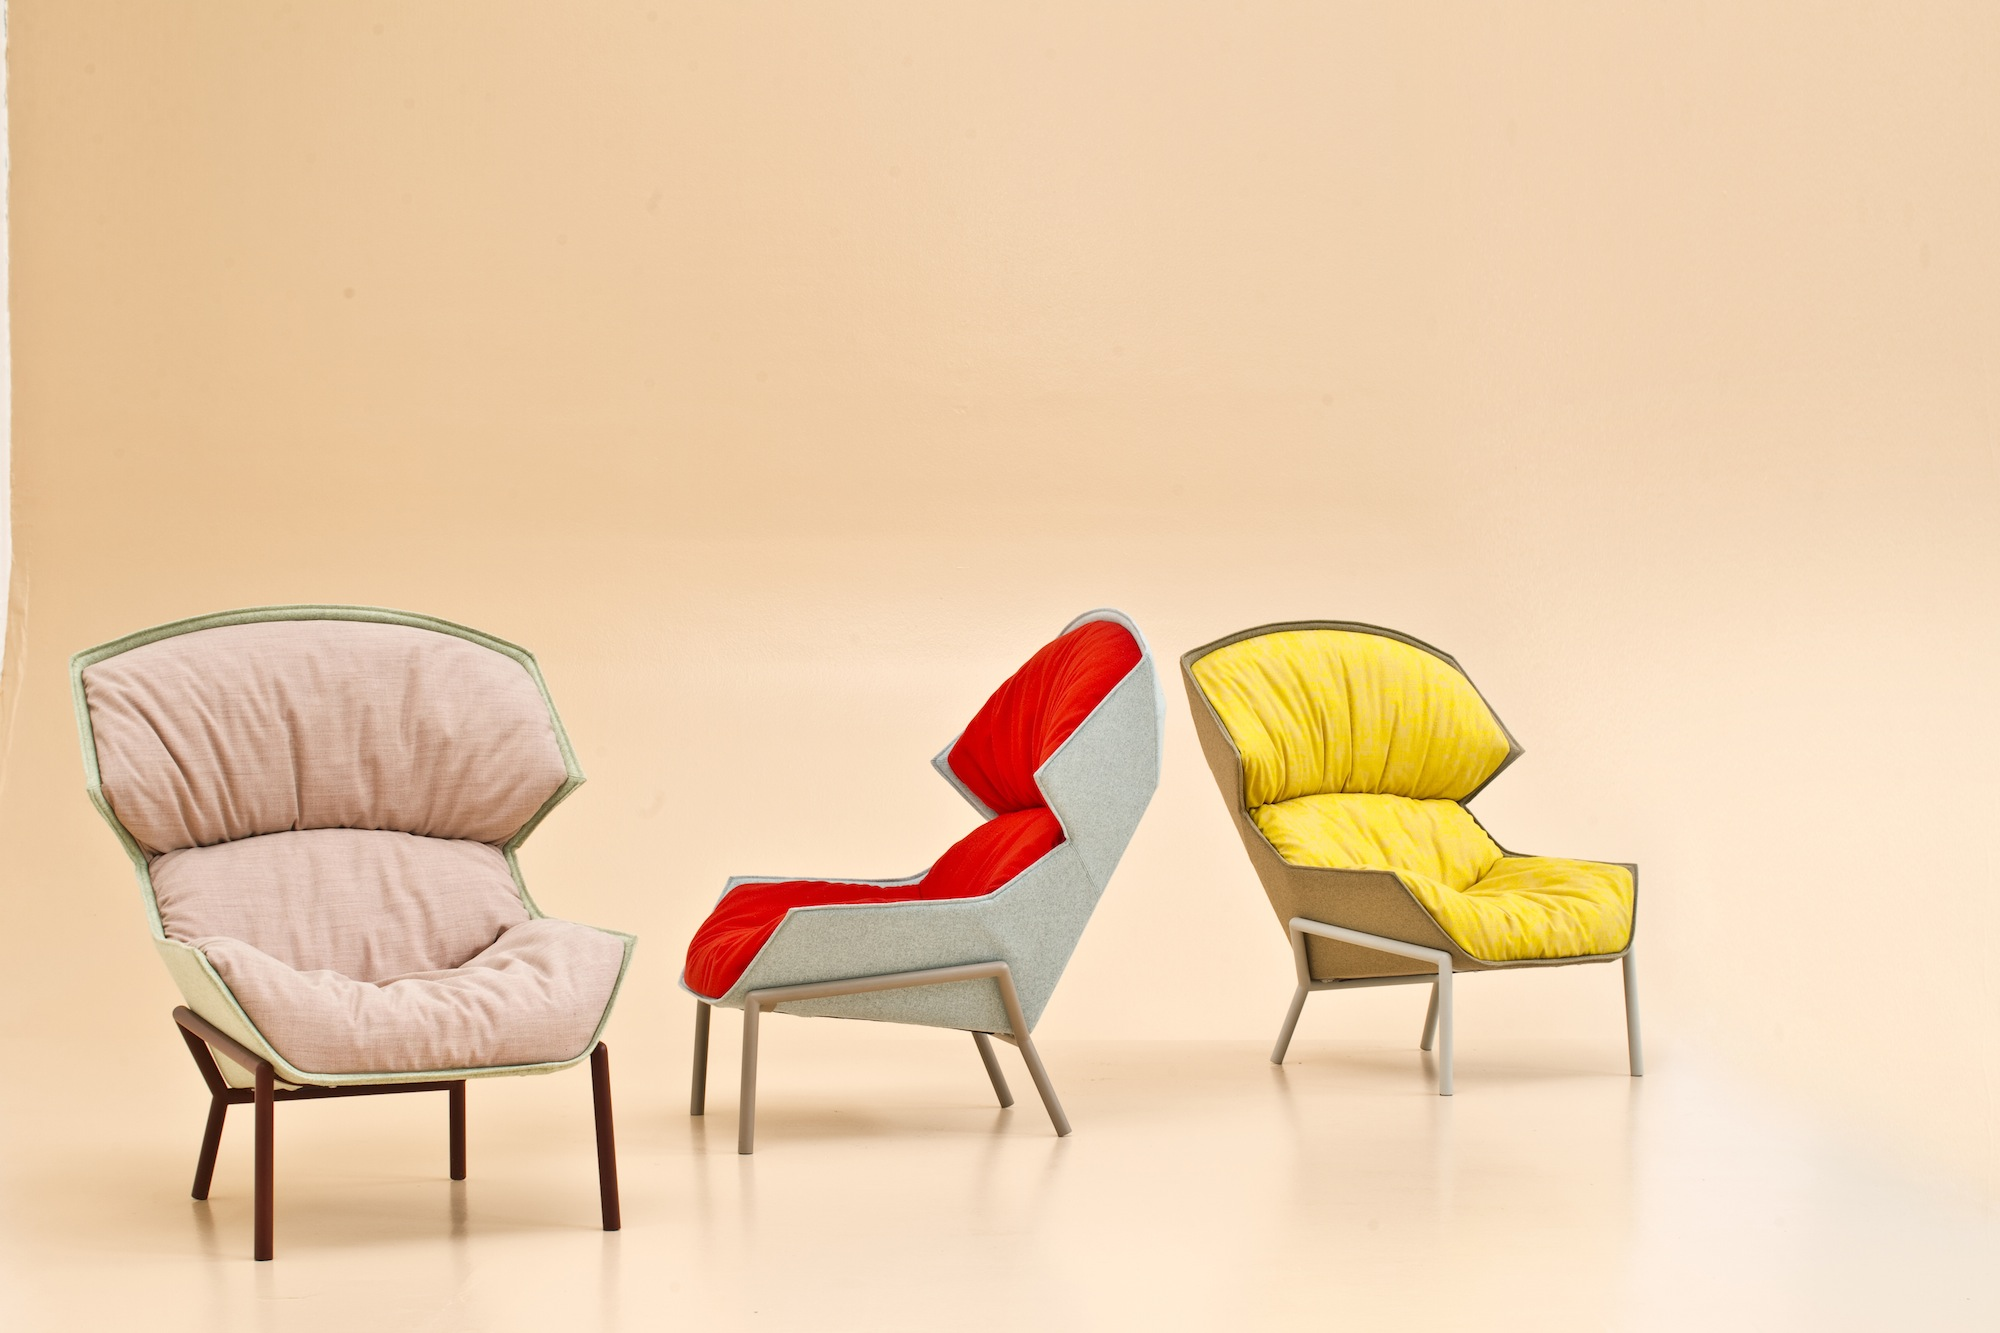 Urquiola For Moroso